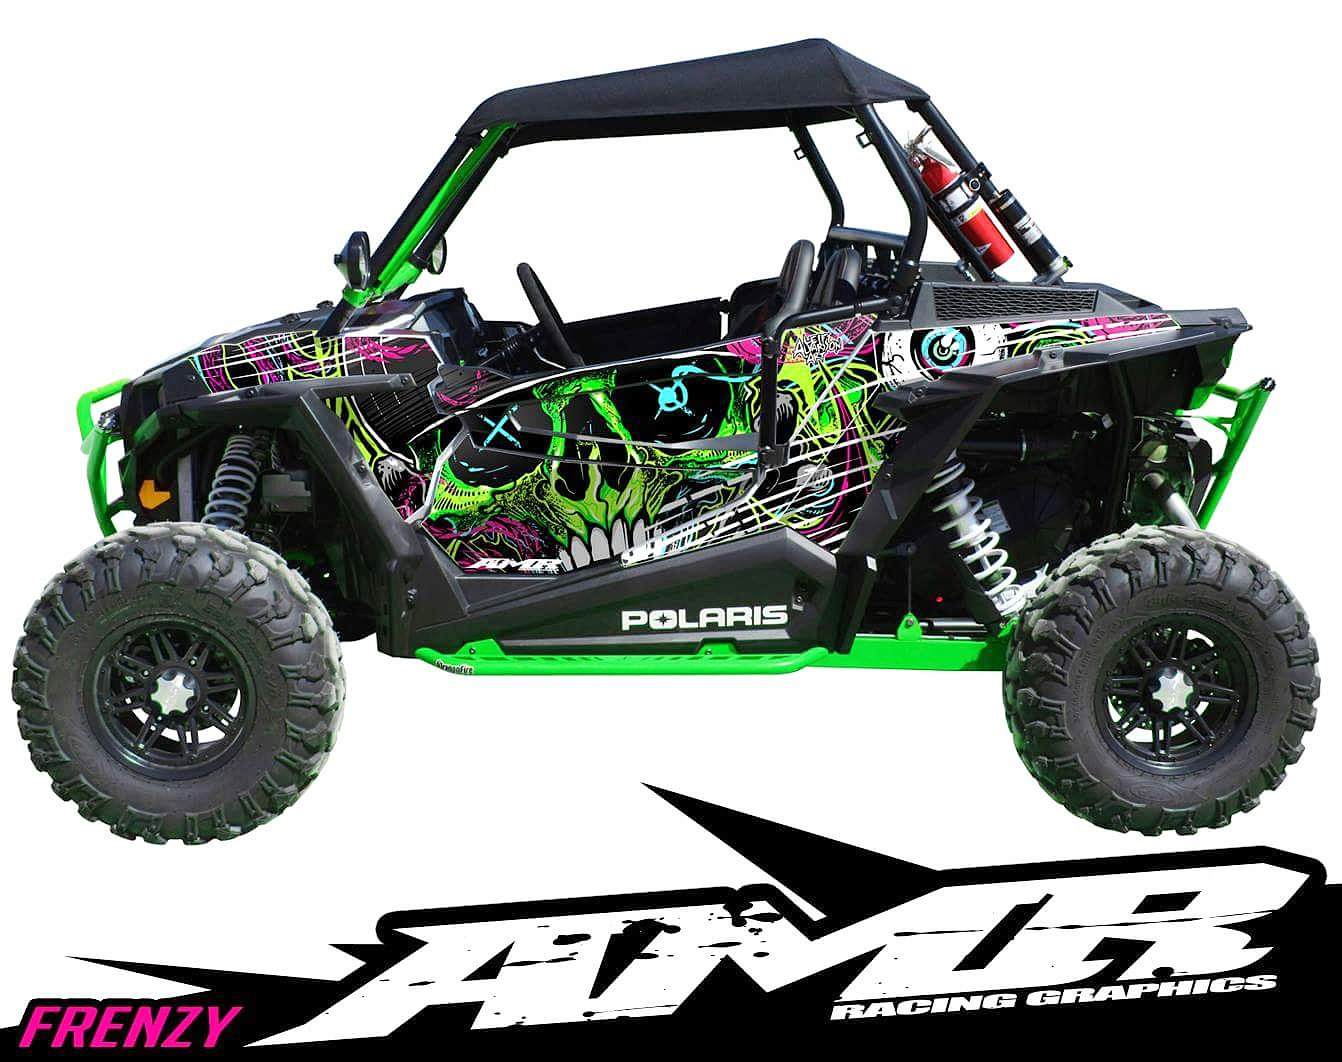 Leif Alvarsson ART: RZR wraps available now! If you want to shred